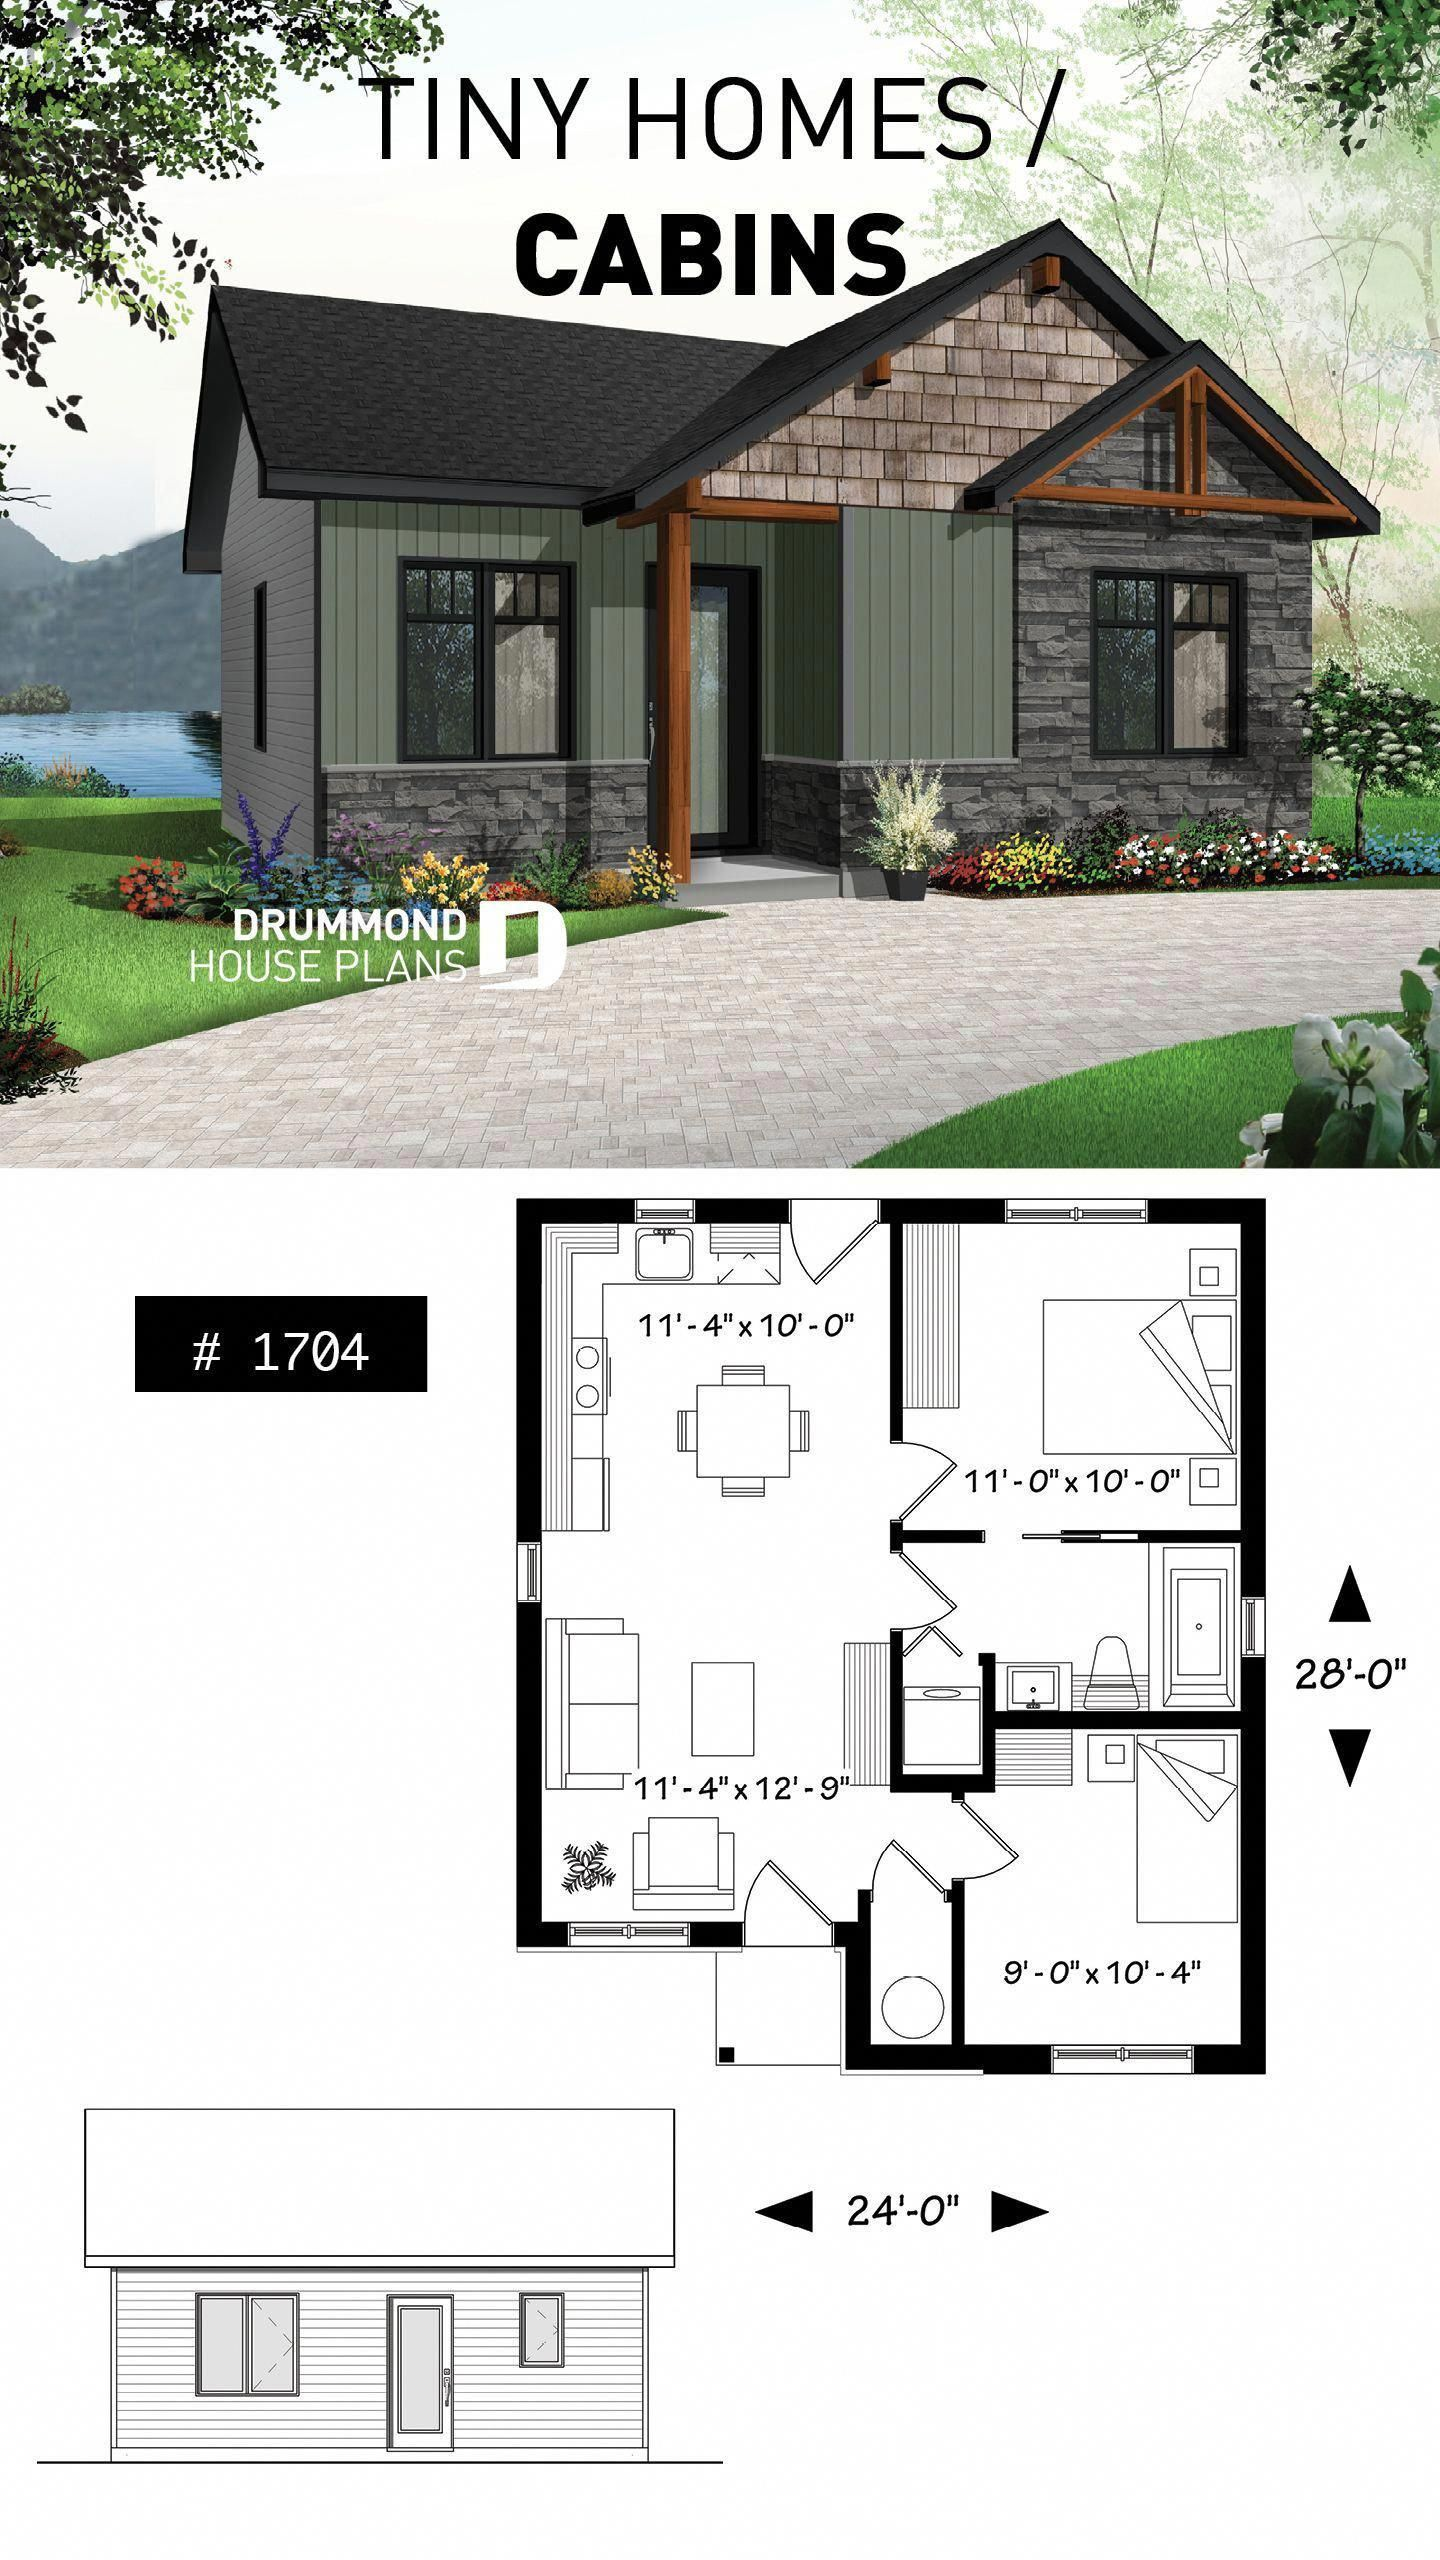 5 Free Diy Tiny House Plans To Help You Live The Small Happy Life Tinyhouse Tinylife Interior Diy Tiny House Plans Tiny House Floor Plans Tiny House Plans